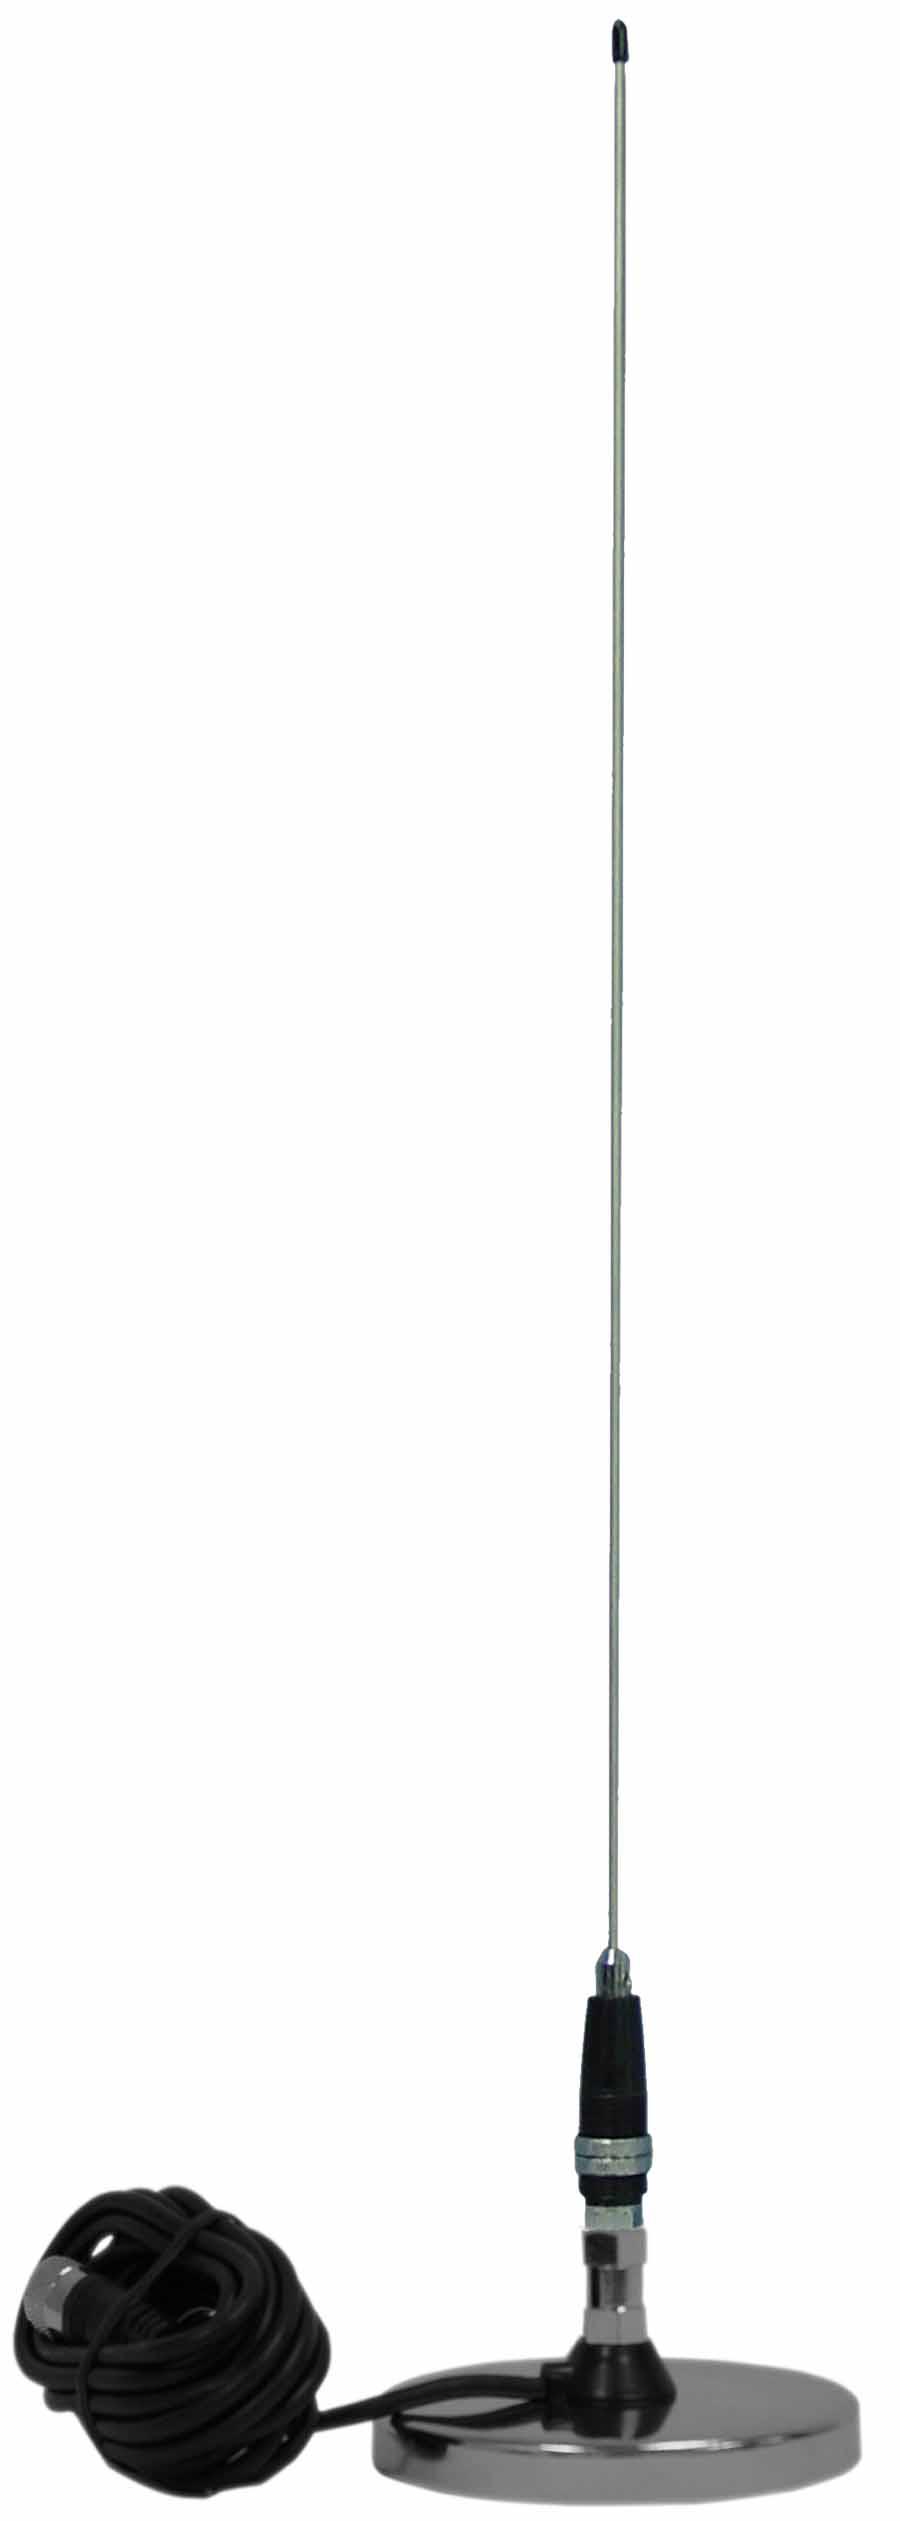 "JBC112-2400 - ProComm Kwik Tune 2' Whip CB Antenna with 3"" Chrome Magnet & 12' Coax"